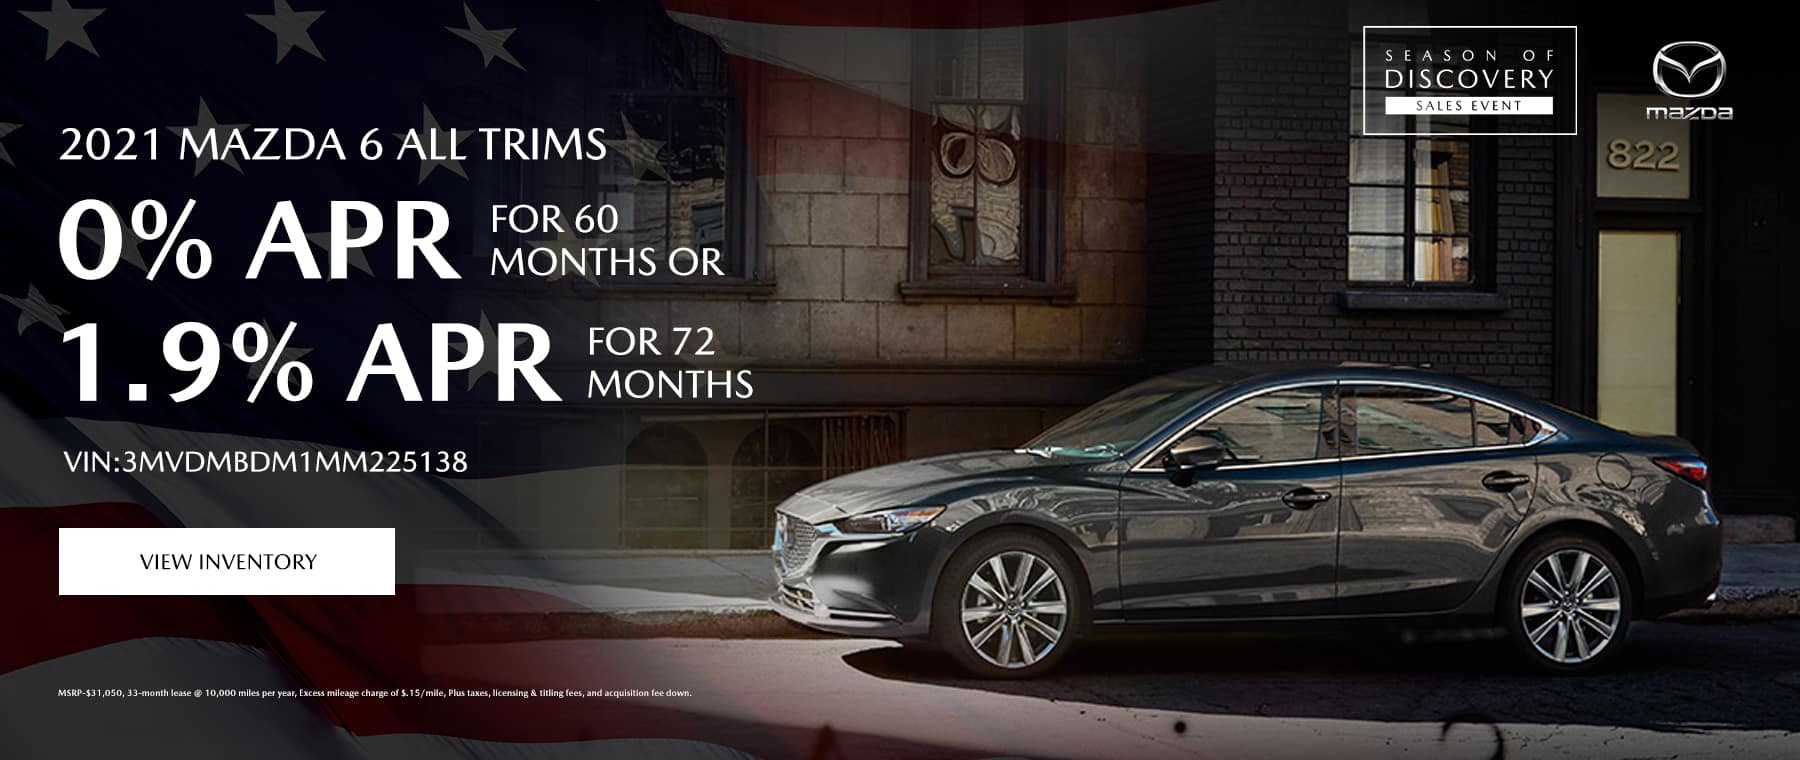 2021 Mazda 6 All Trims 0% APR for 60 months or 1.9% APR for 72 months Vin:3MVDMBDM1MM225138